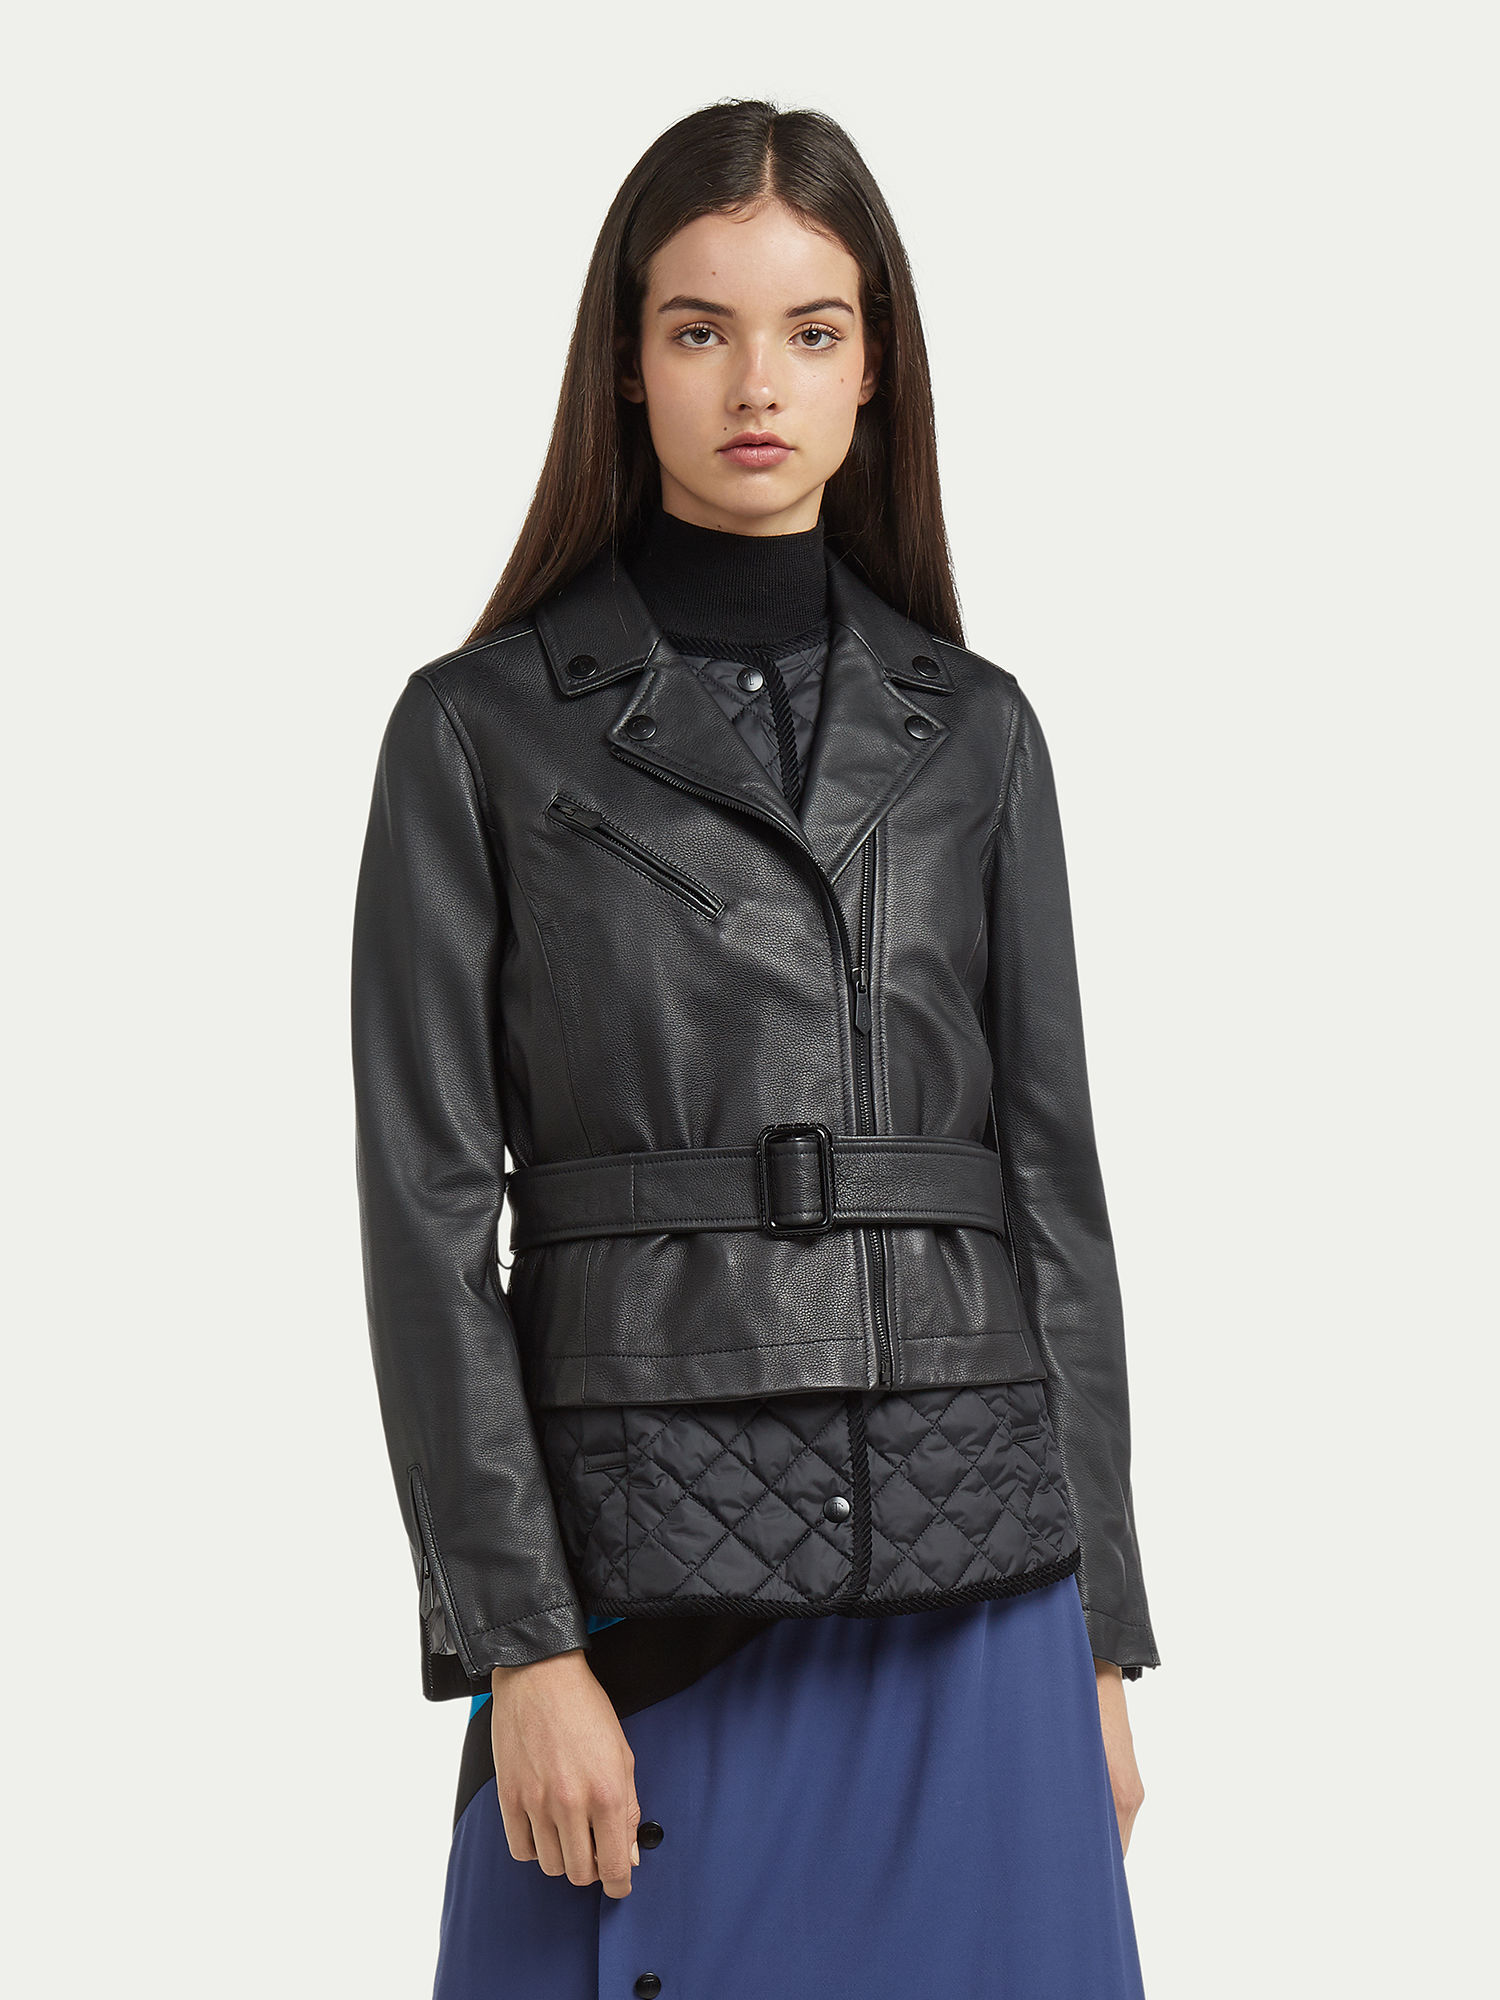 55cc97973dc48 Hammered-leather-biker-jacket-with-double-quilting TRUSSARDI 50 01 8057735780211 F.jpg